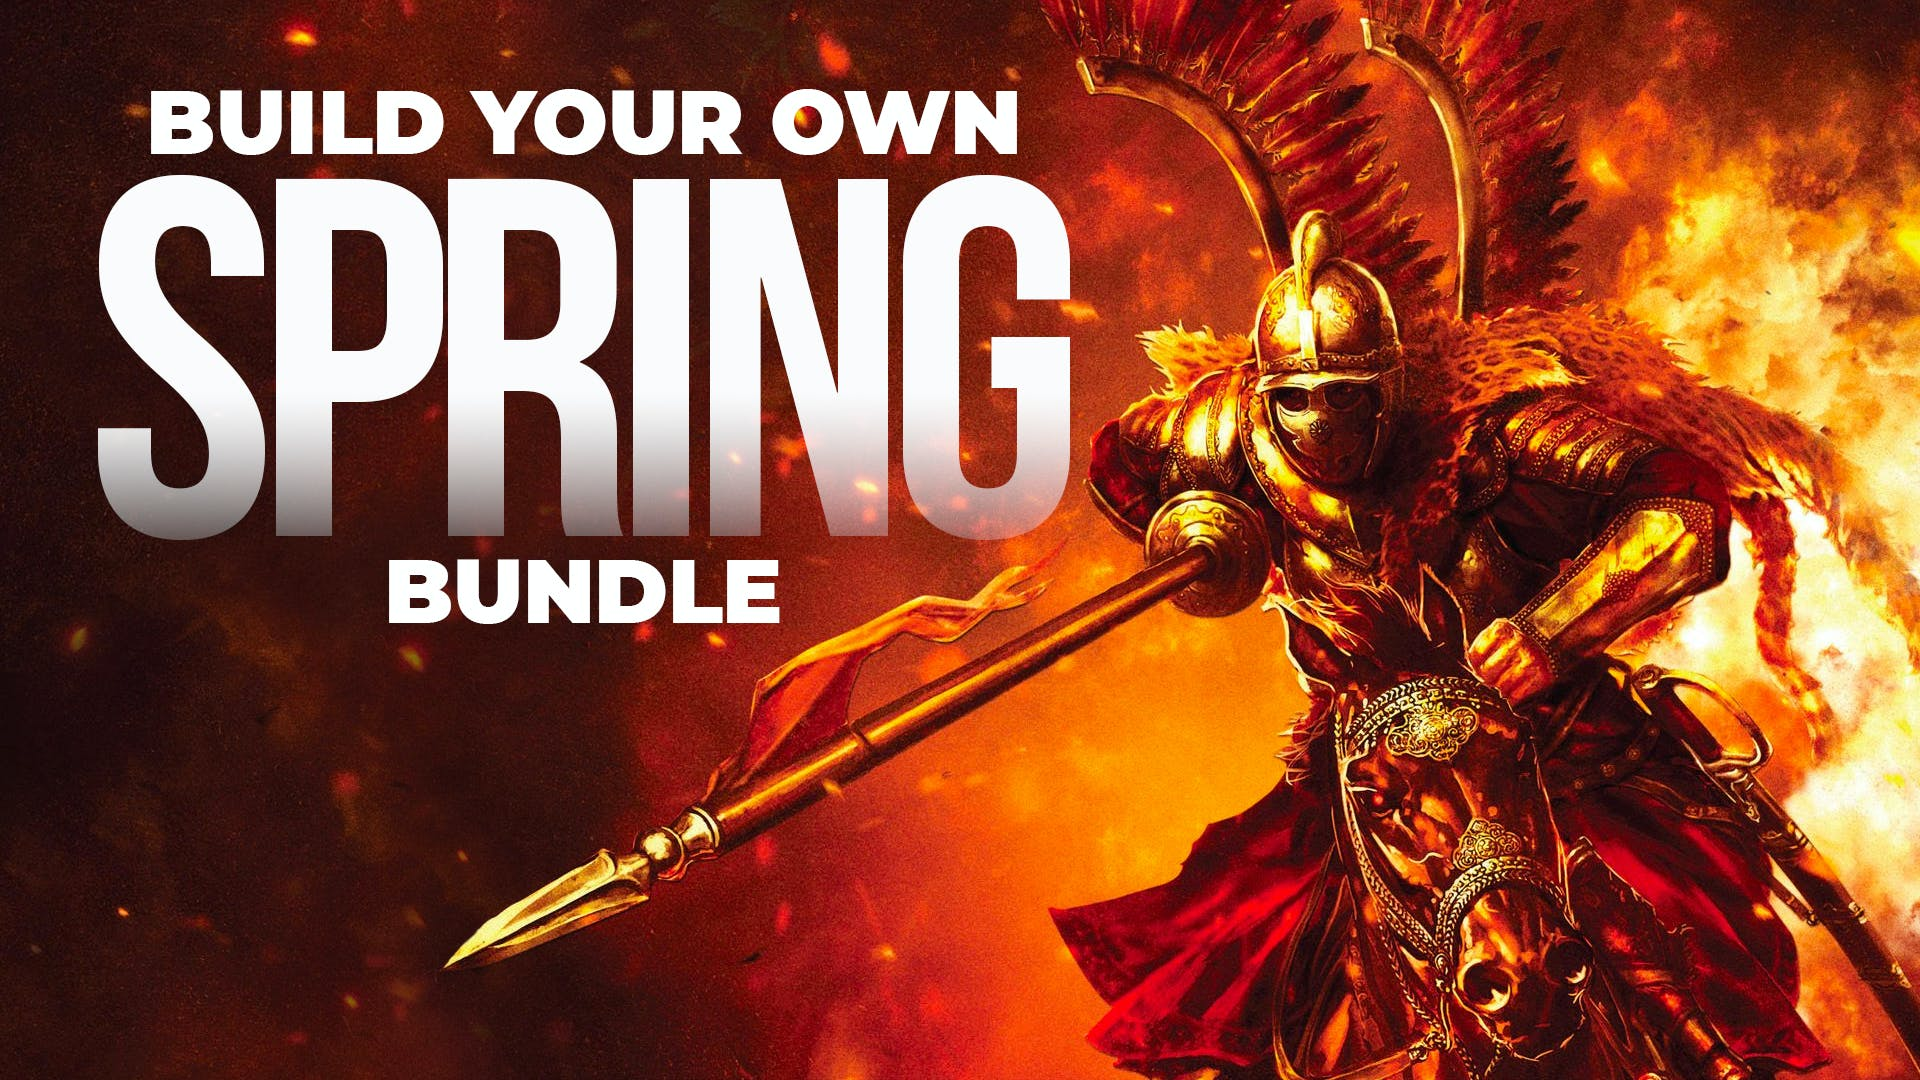 Build your own Spring Bundle